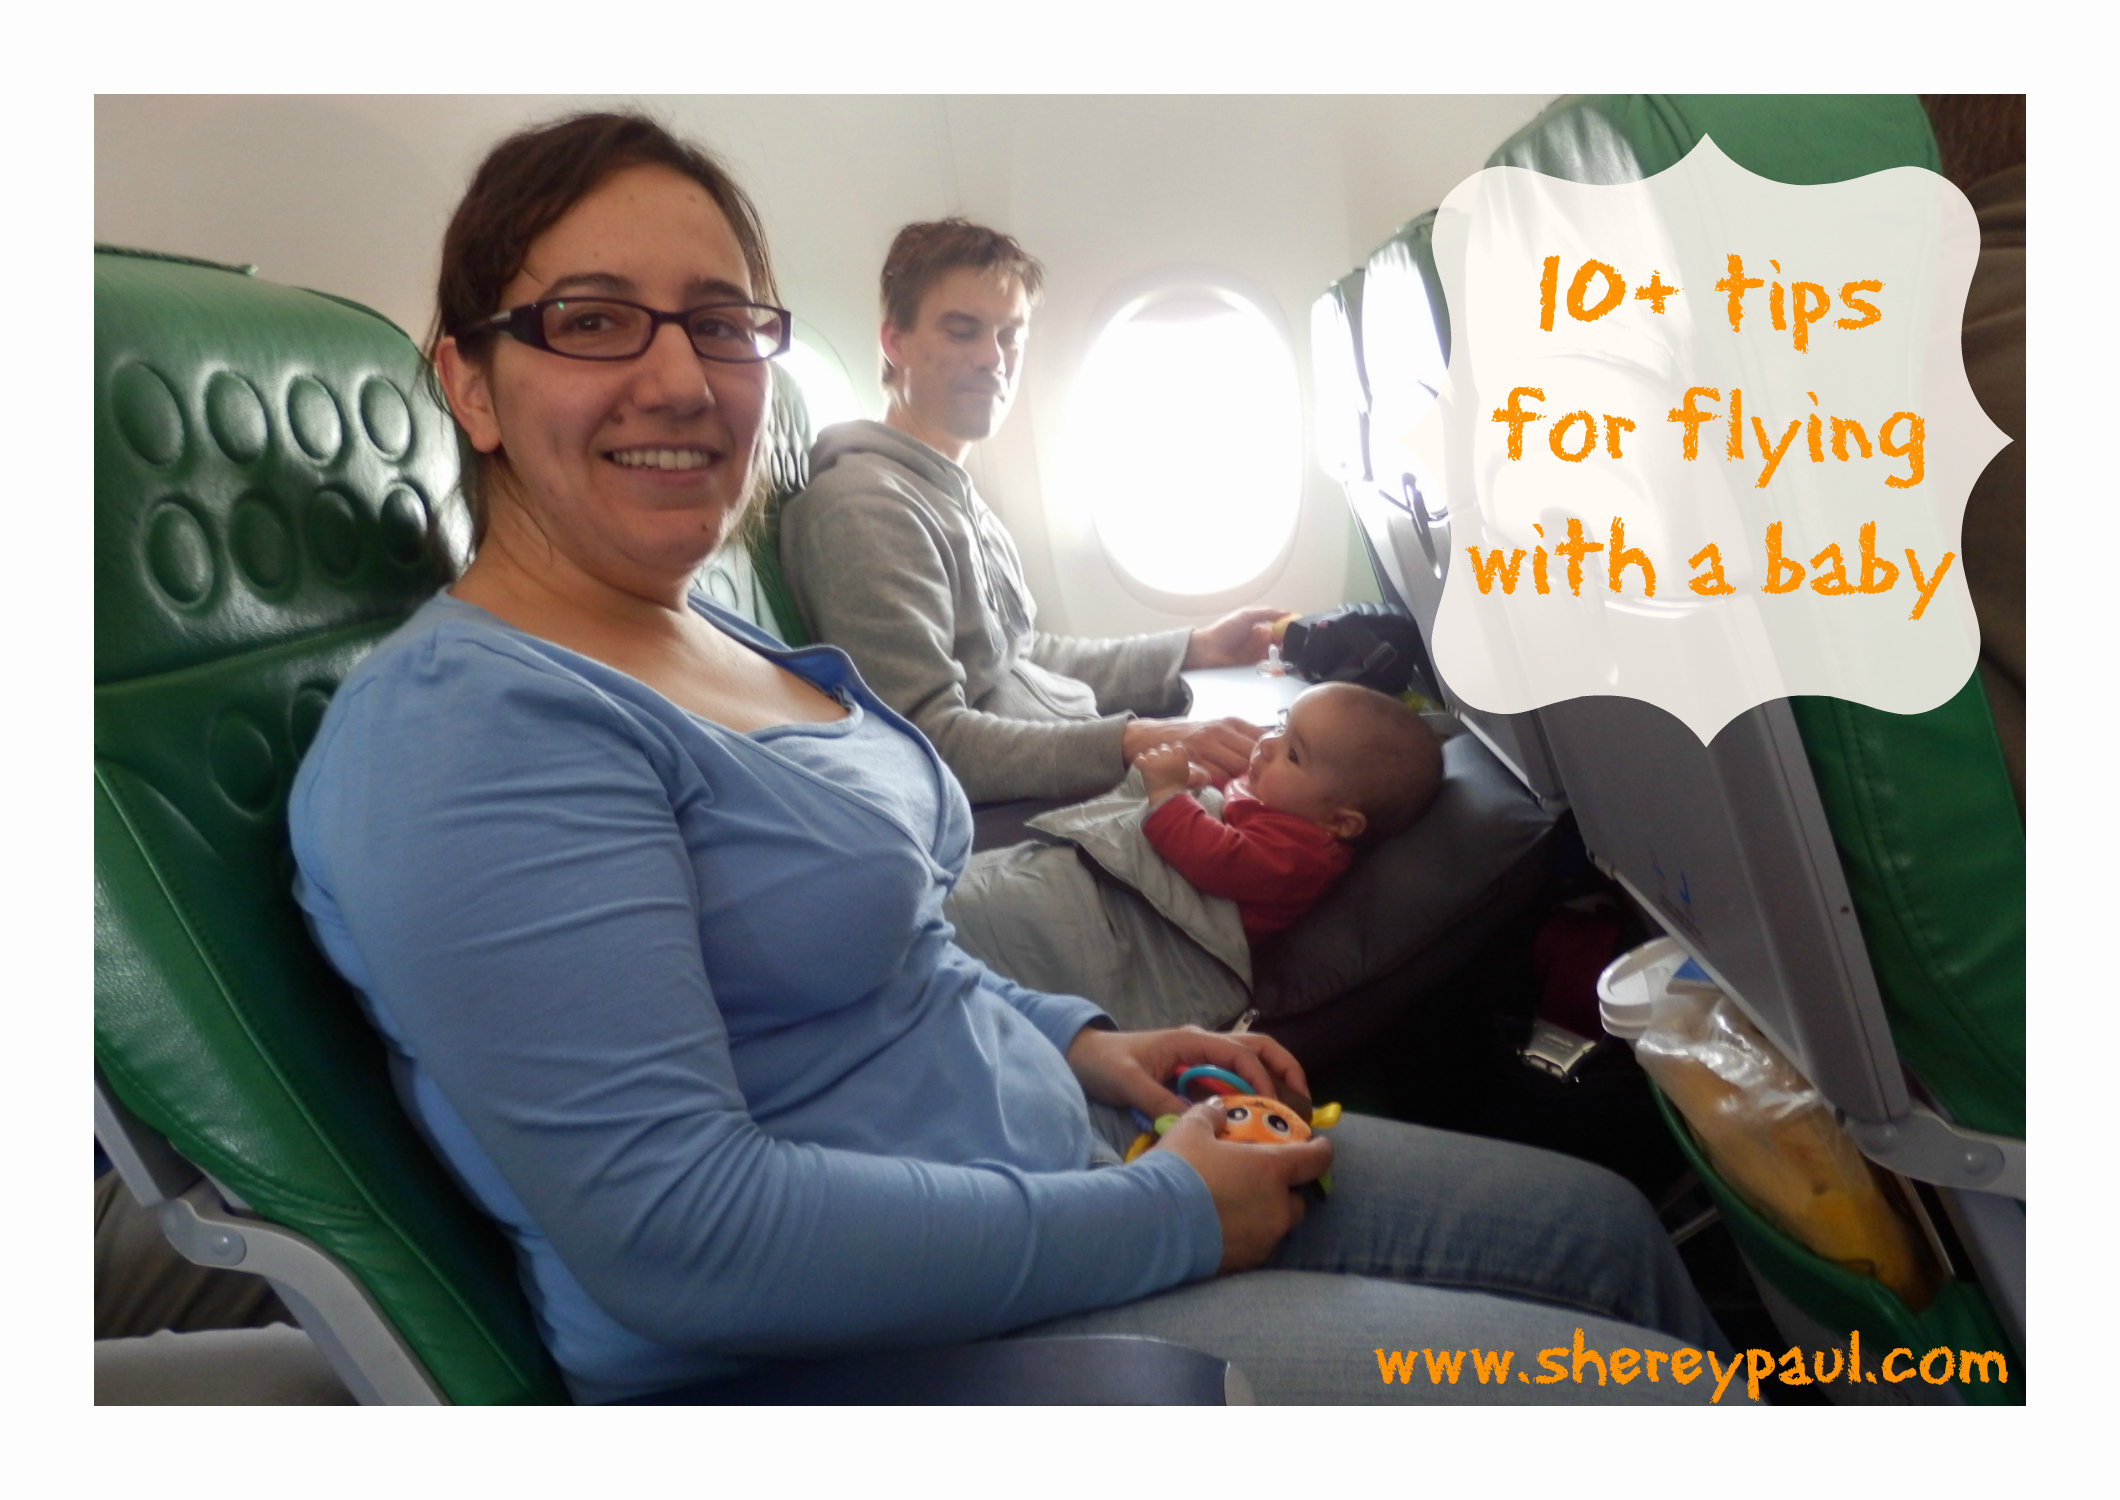 Baby bed airplane - 10tips